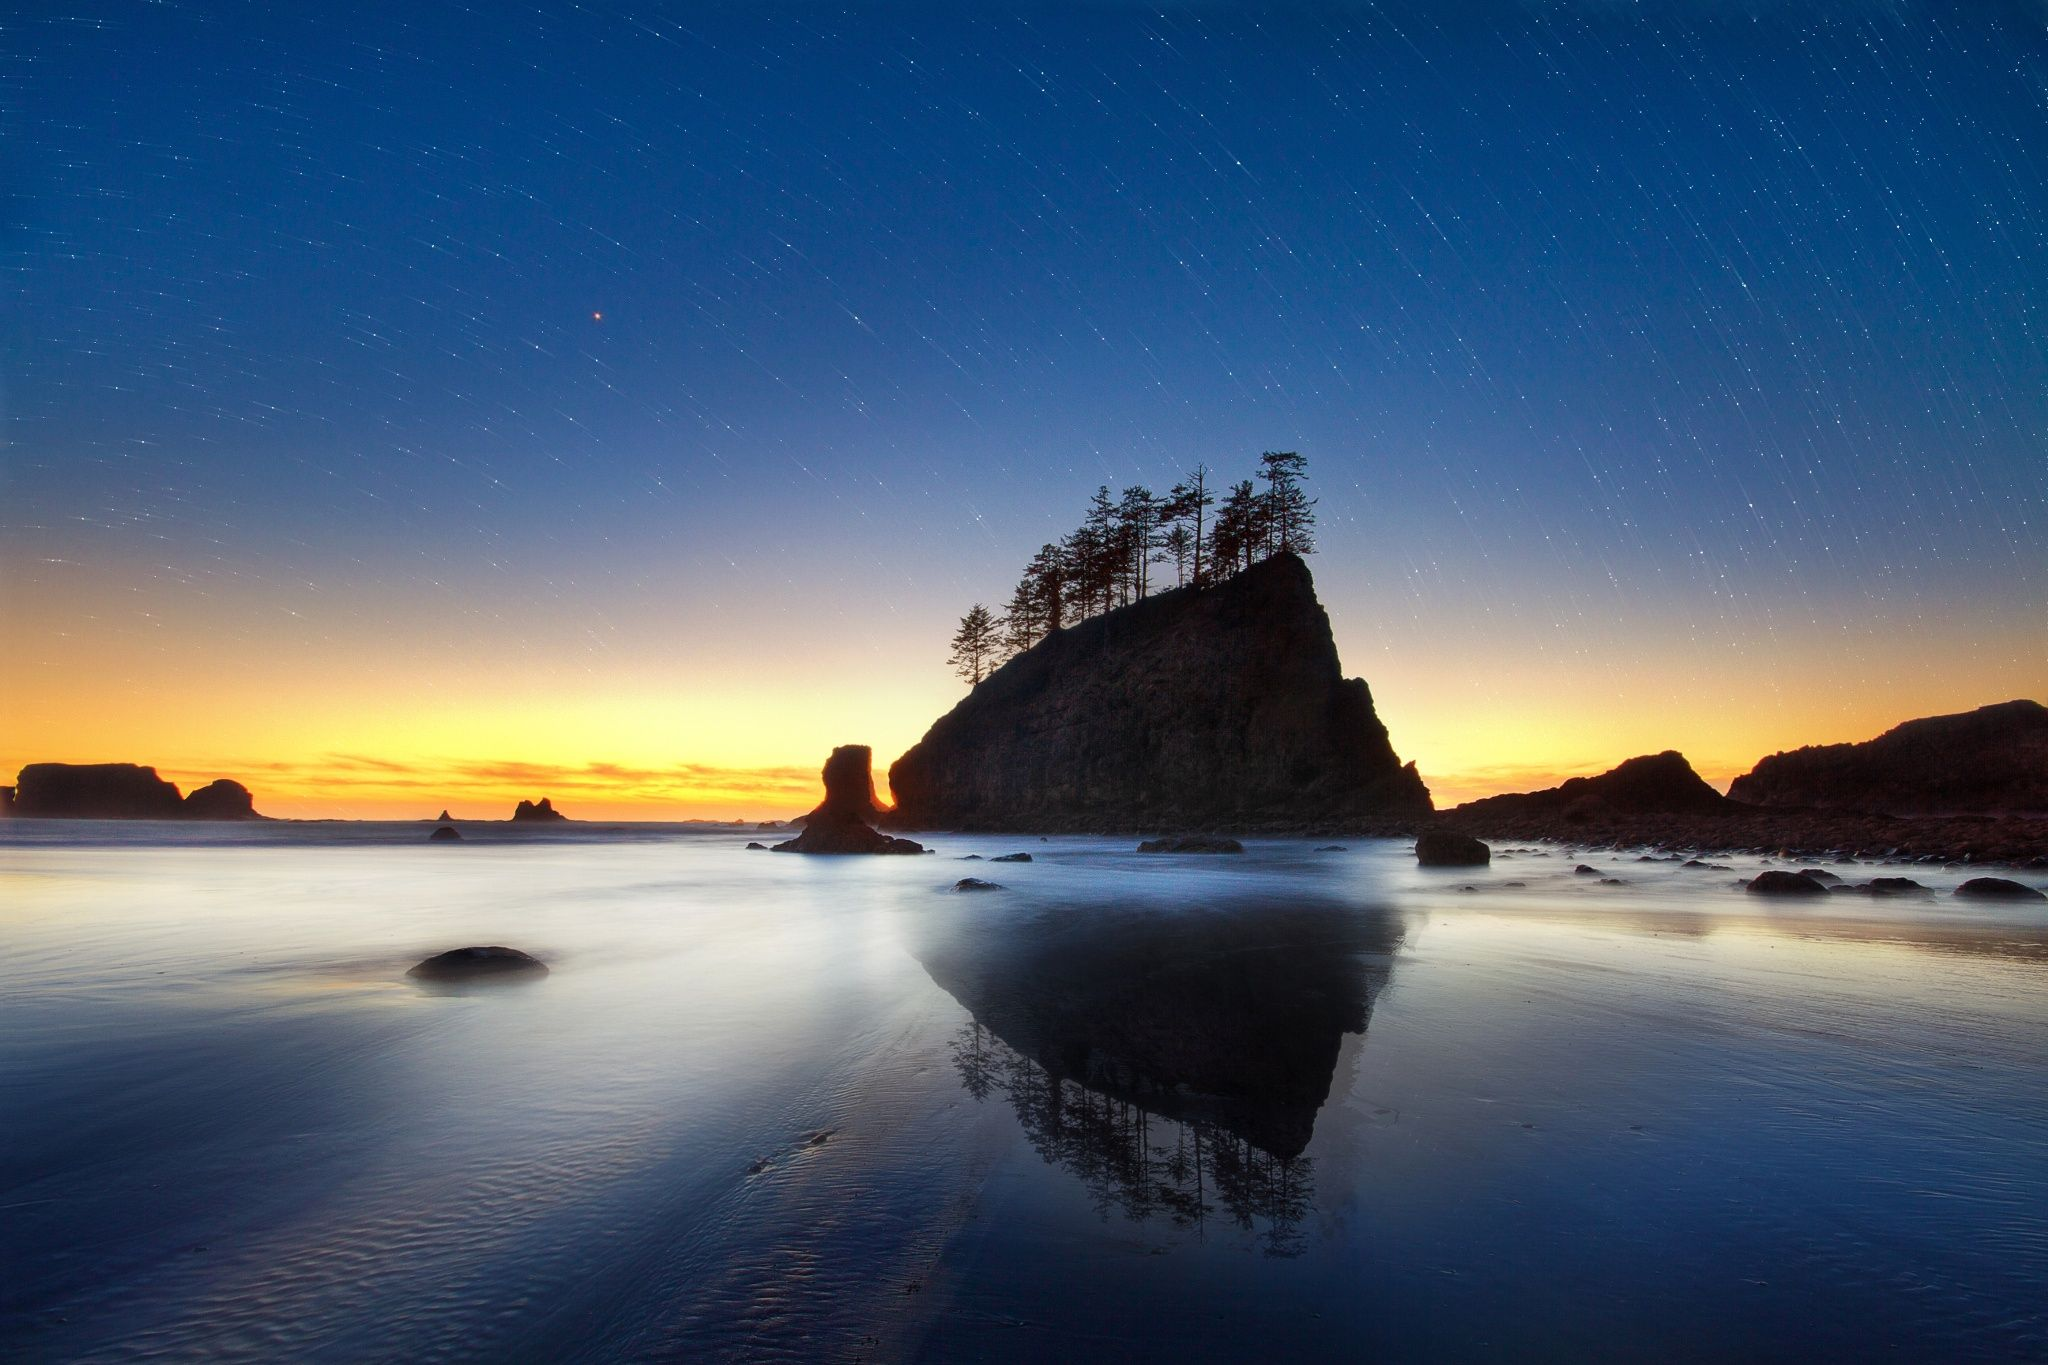 Come Join Us An Amazing Sunset On Second Beach In La Push Wa